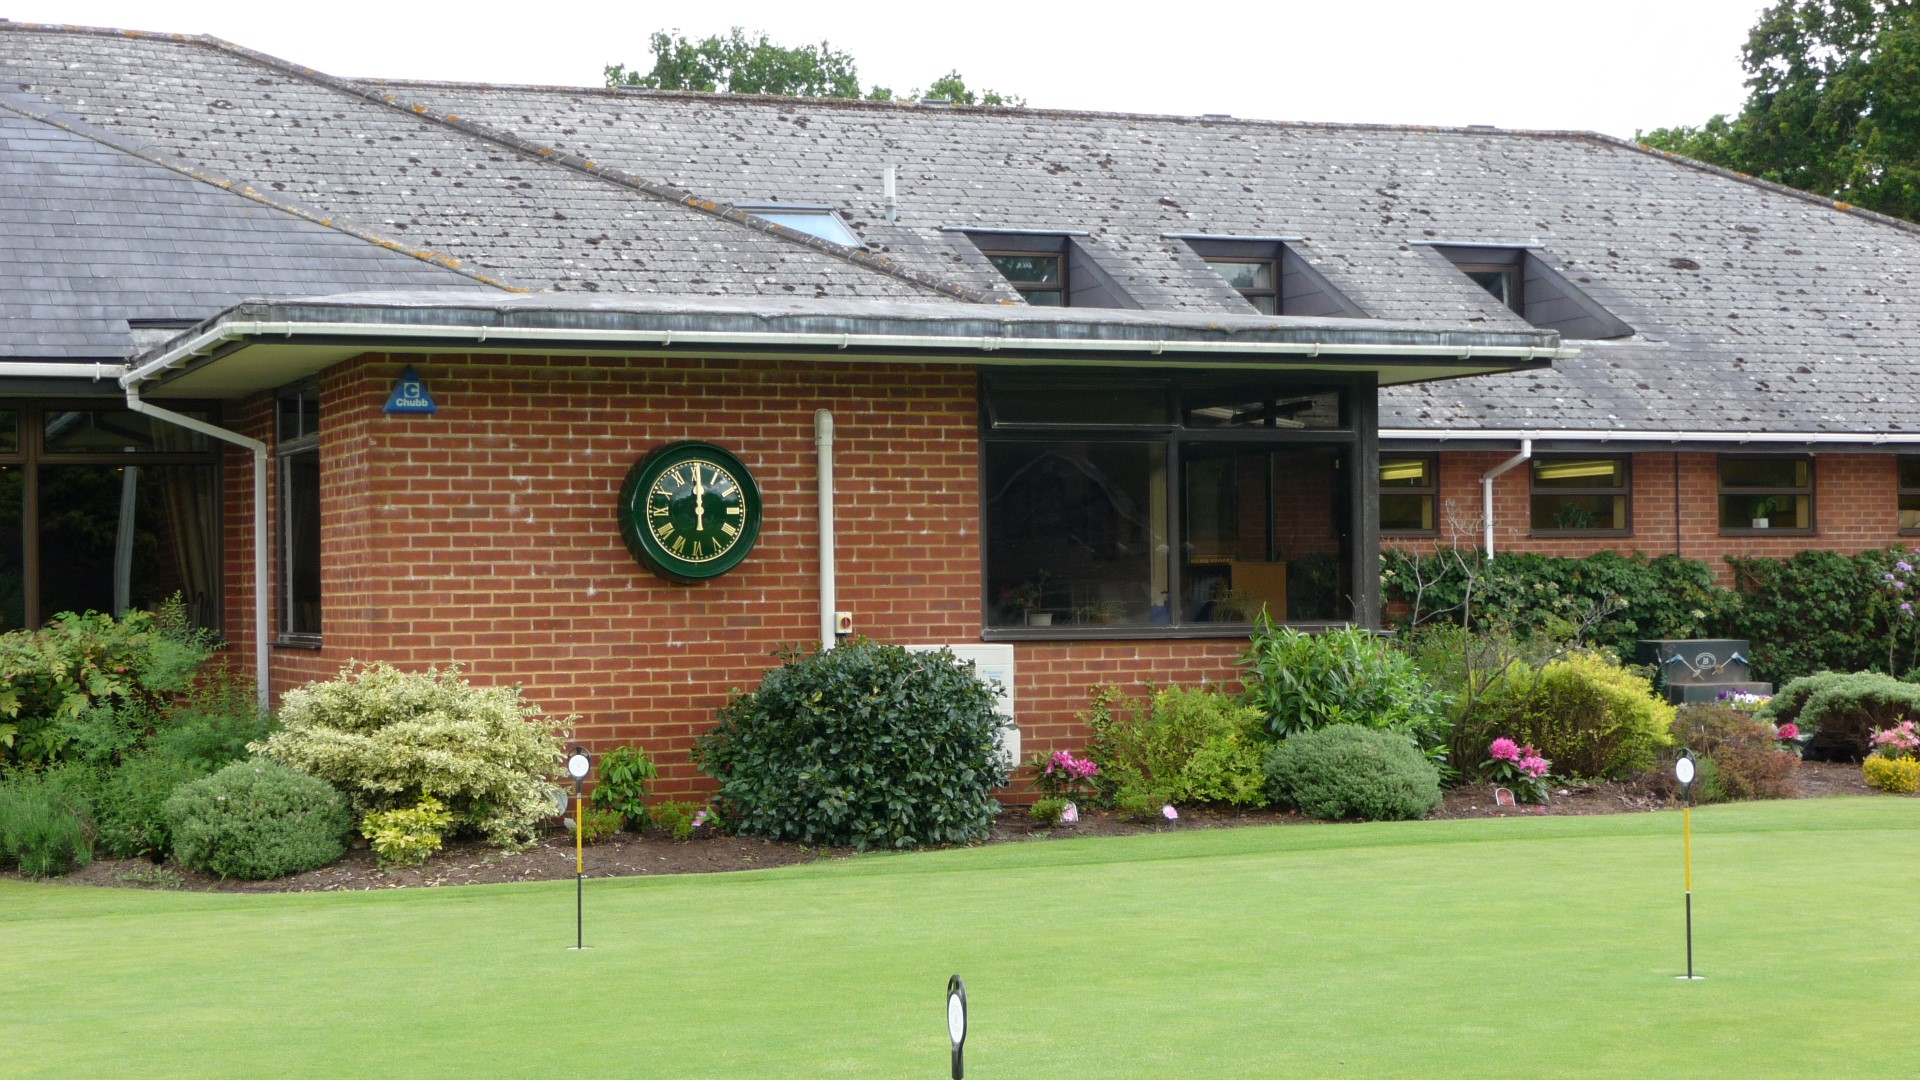 Hankeley Golf Club green bezel clock